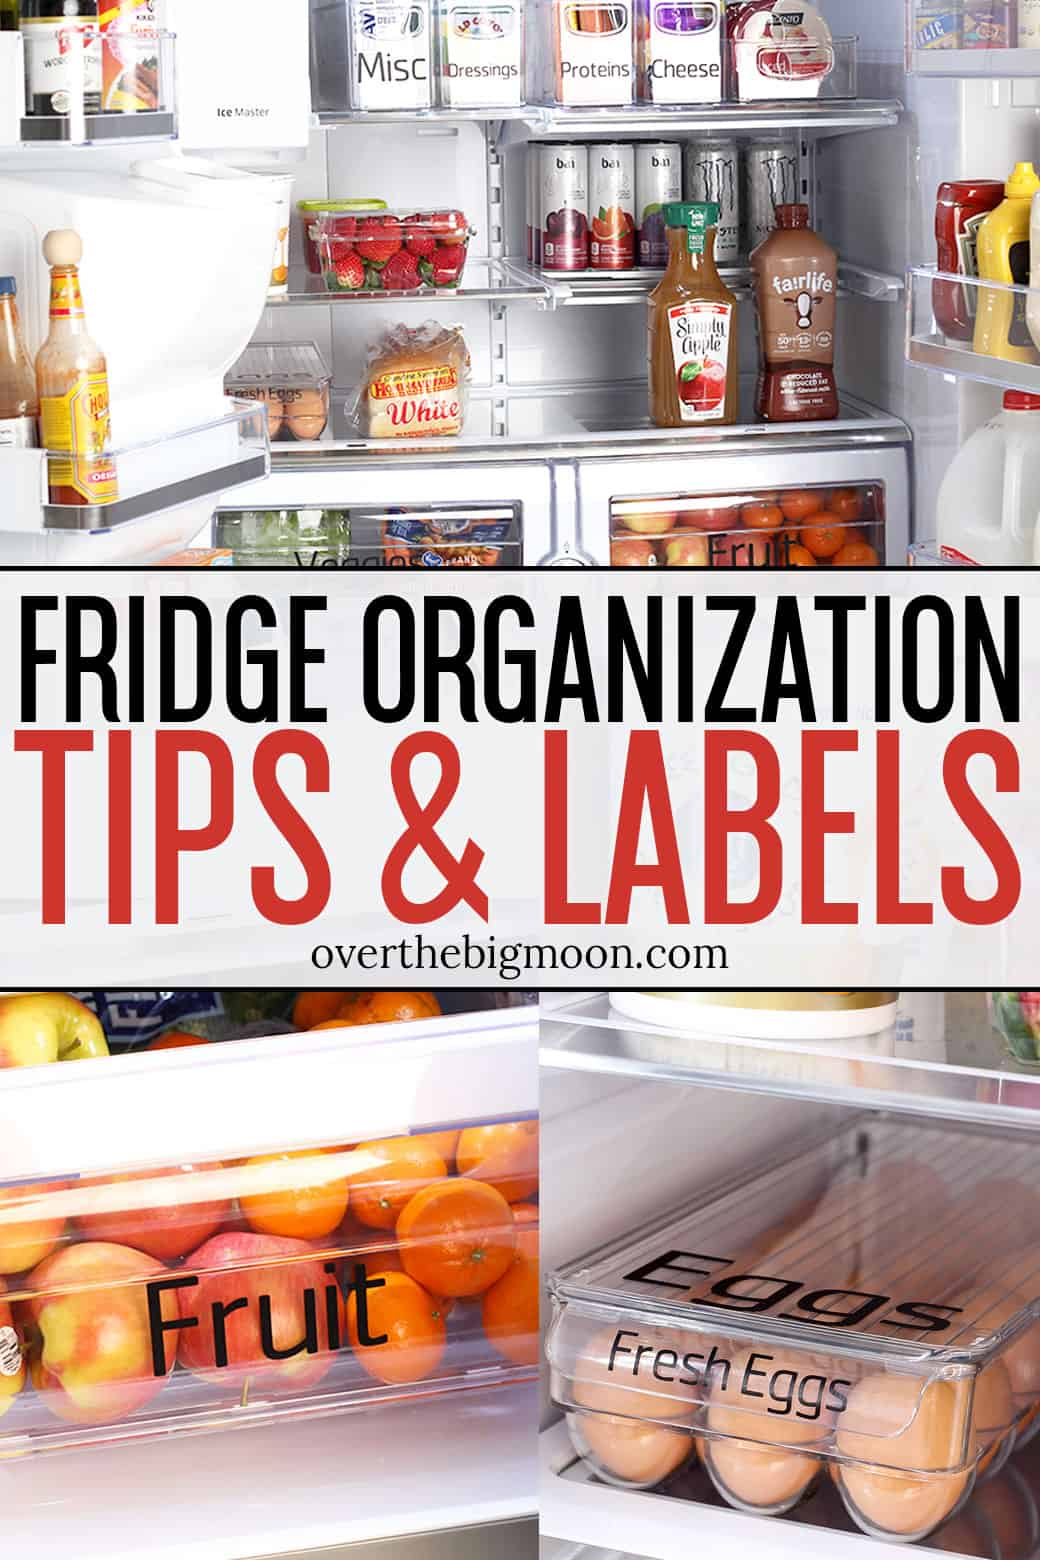 These Refrigerator Organization Tips and Labels will help you not waste food, as well as make prep easier and faster! Add these simple vinyl labels to some organizing bins and use these tips to get started! From overthebigmoon.com!